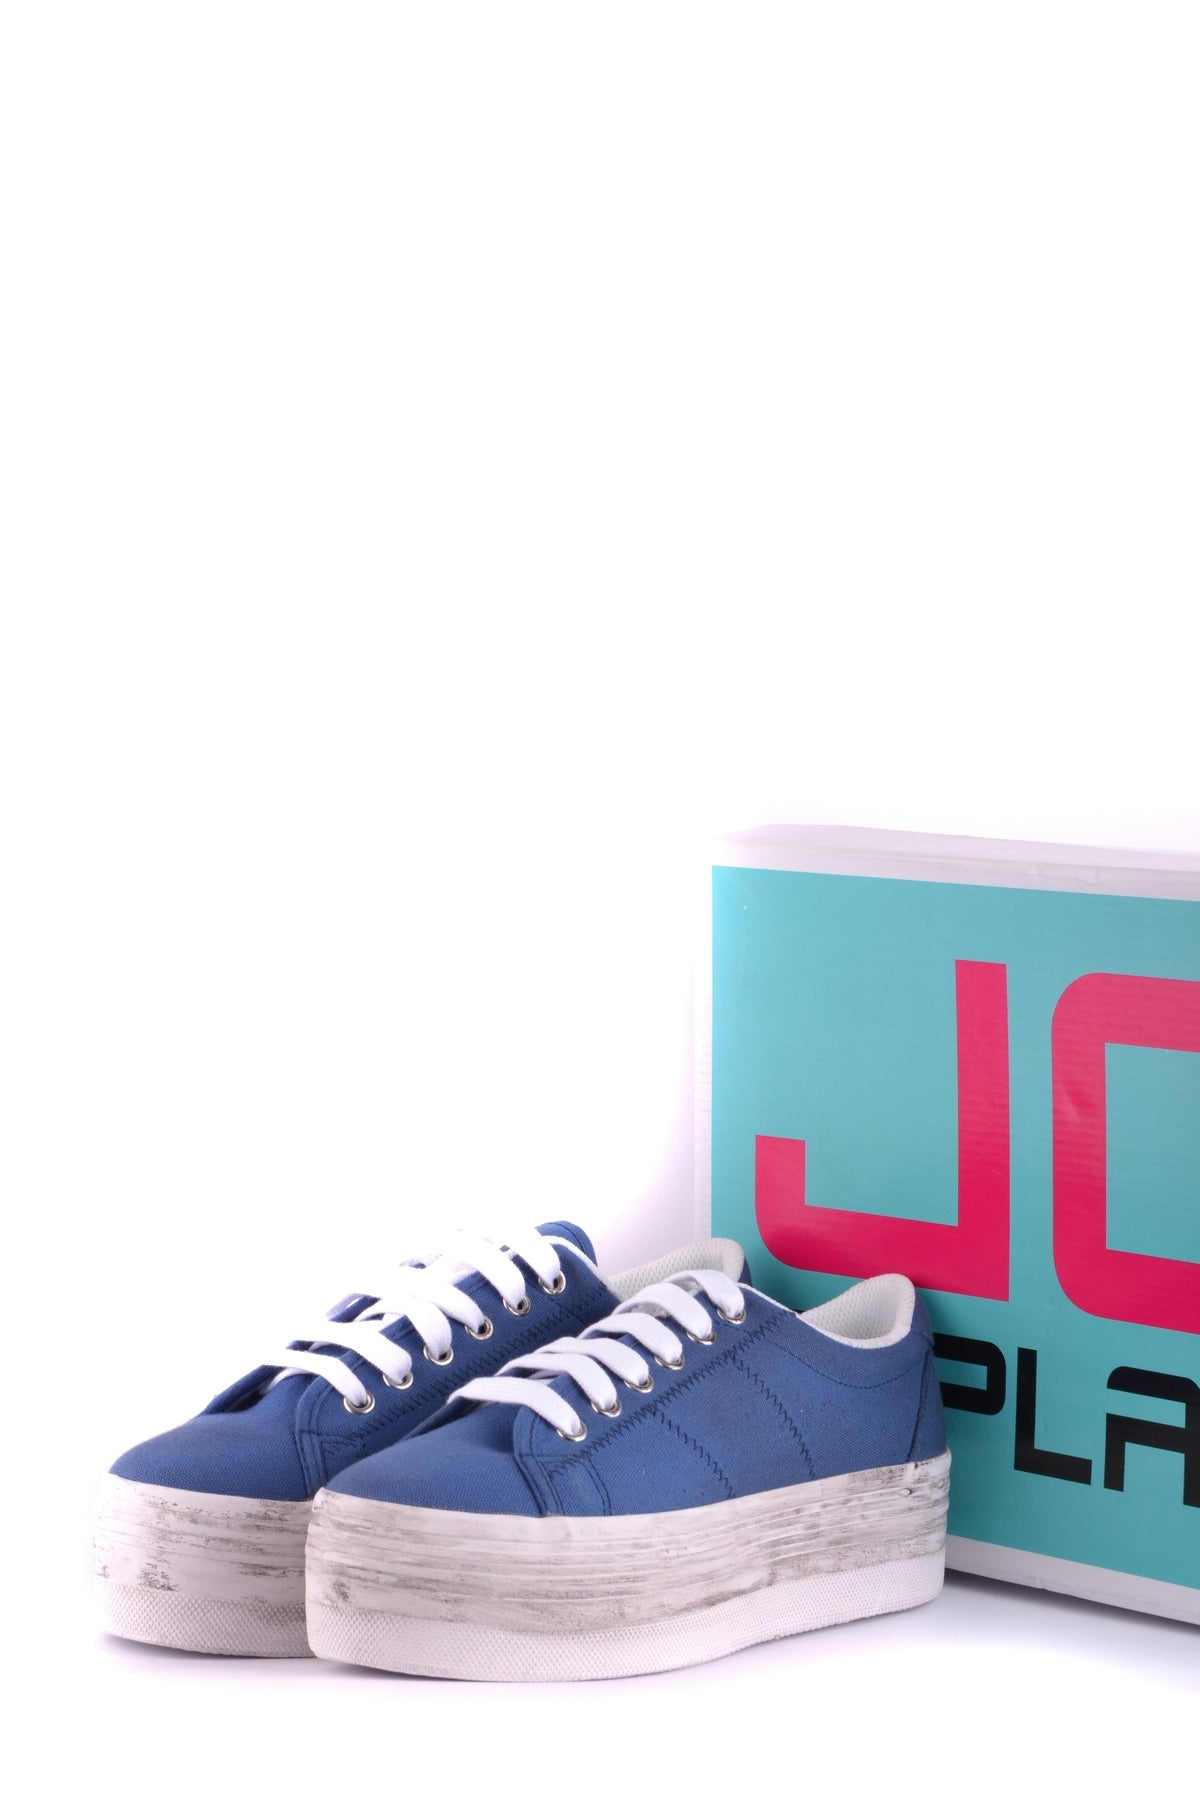 Shoes Jc Play By Jeffrey Campbell-Sneakers - WOMAN-Product Details Type Of Accessory: ShoesTerms: New With LabelYear: 2017Main Color: BlueGender: WomanMade In: VietnamSize: EuSeason: Spring / SummerComposition: Tissue 100%-Keyomi-Sook